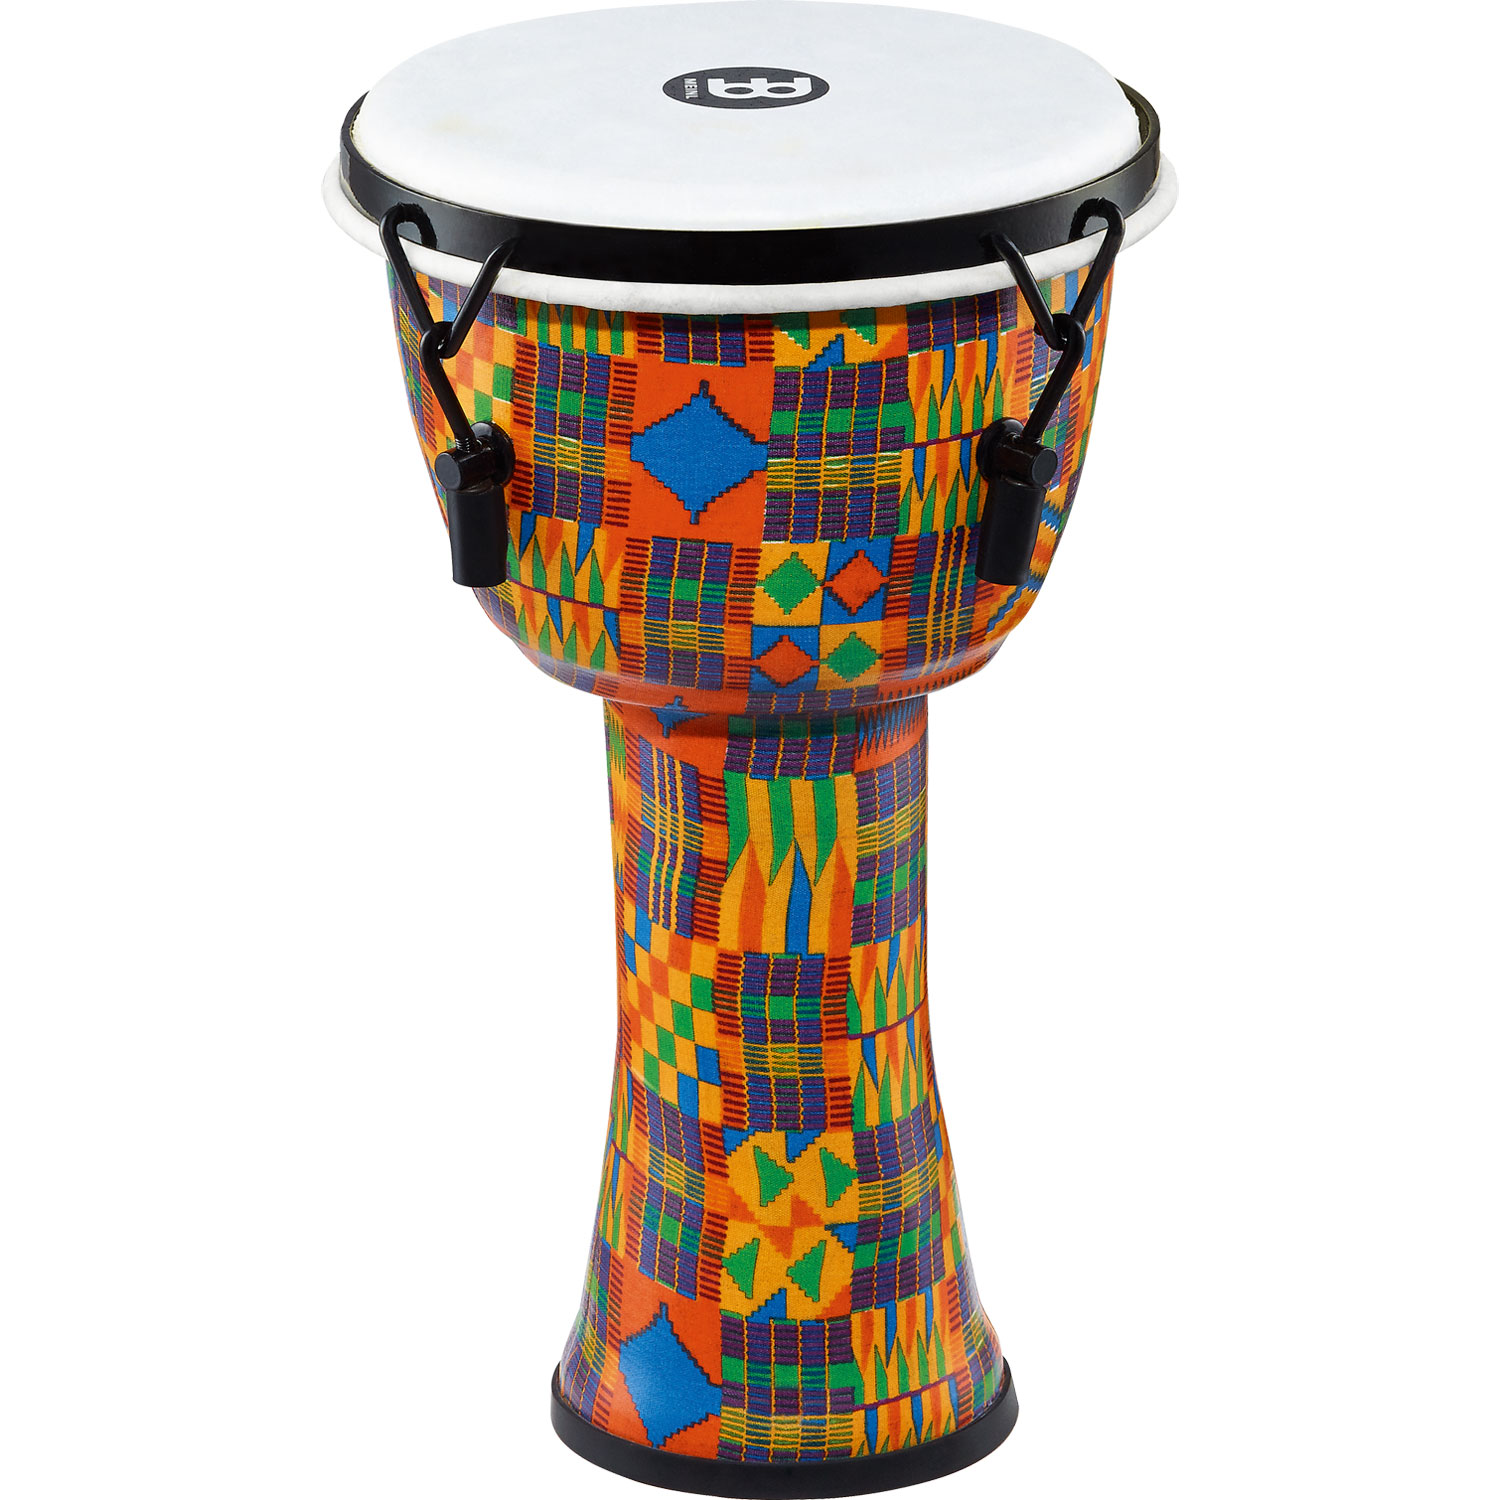 "Meinl 8"" Mechanically-Tuned Travel Djembe in Kenyan Quilt with Synthetic Head"